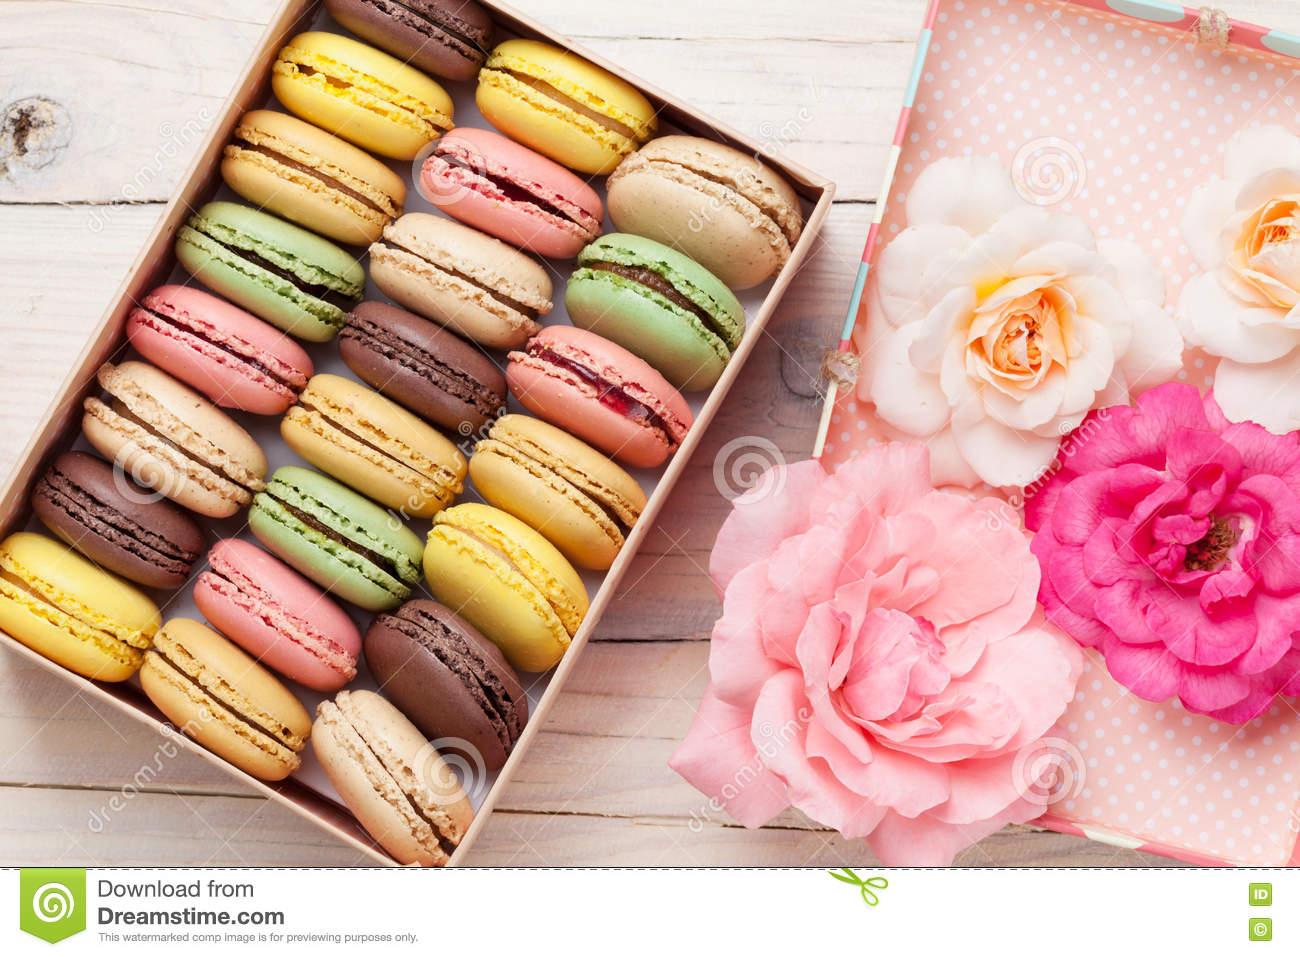 Colorful Macaroons In A Gift Box And Roses Stock Photo - Image ...